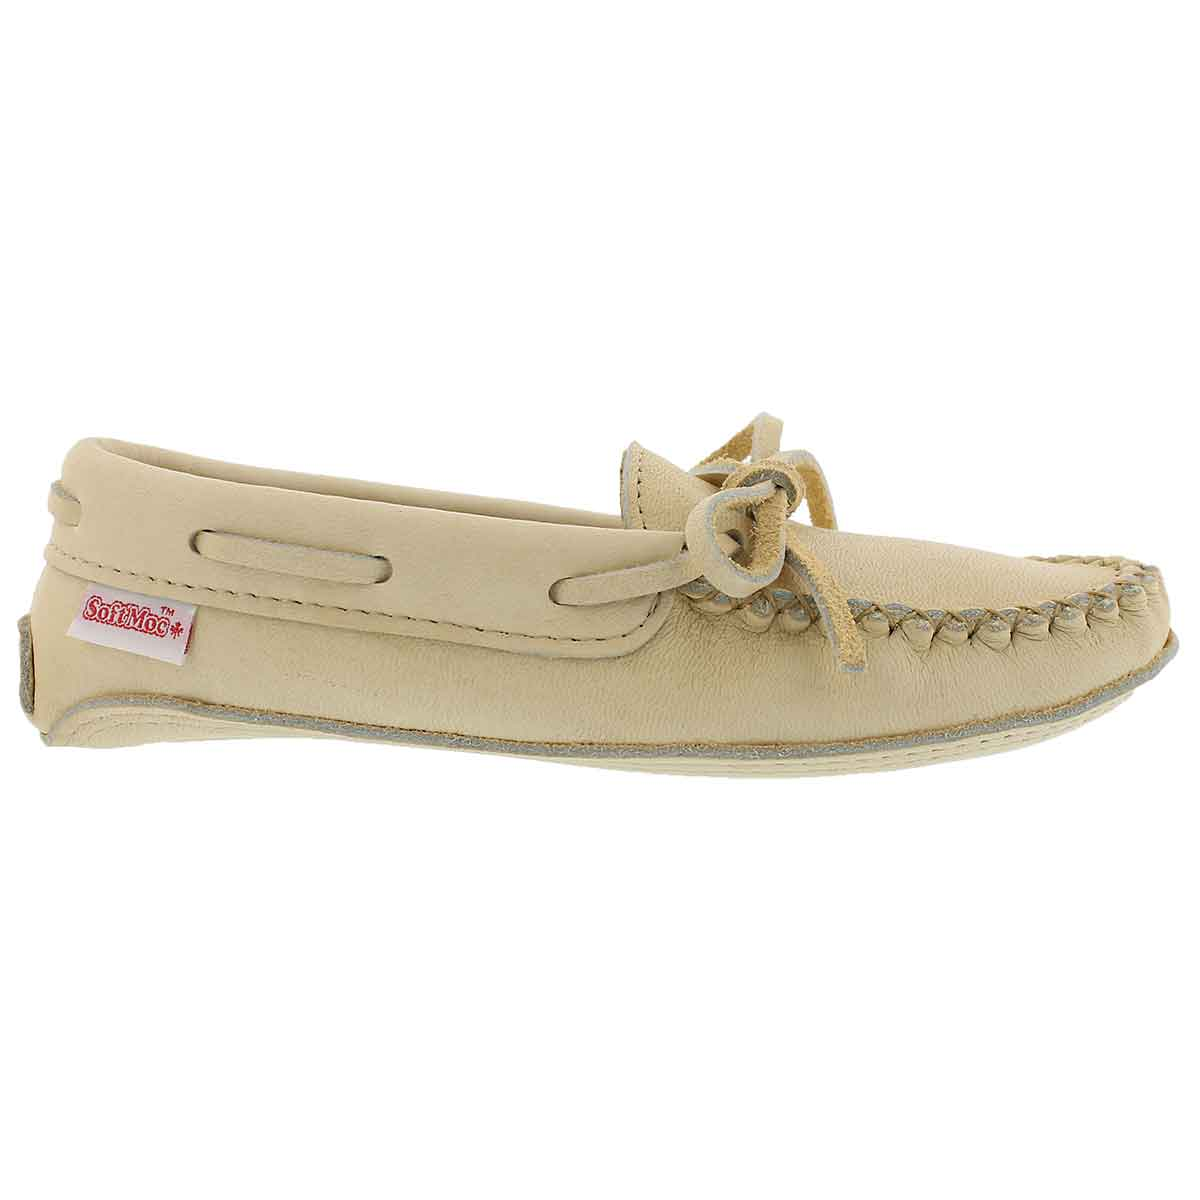 Lds natural caribou double sole moccasin